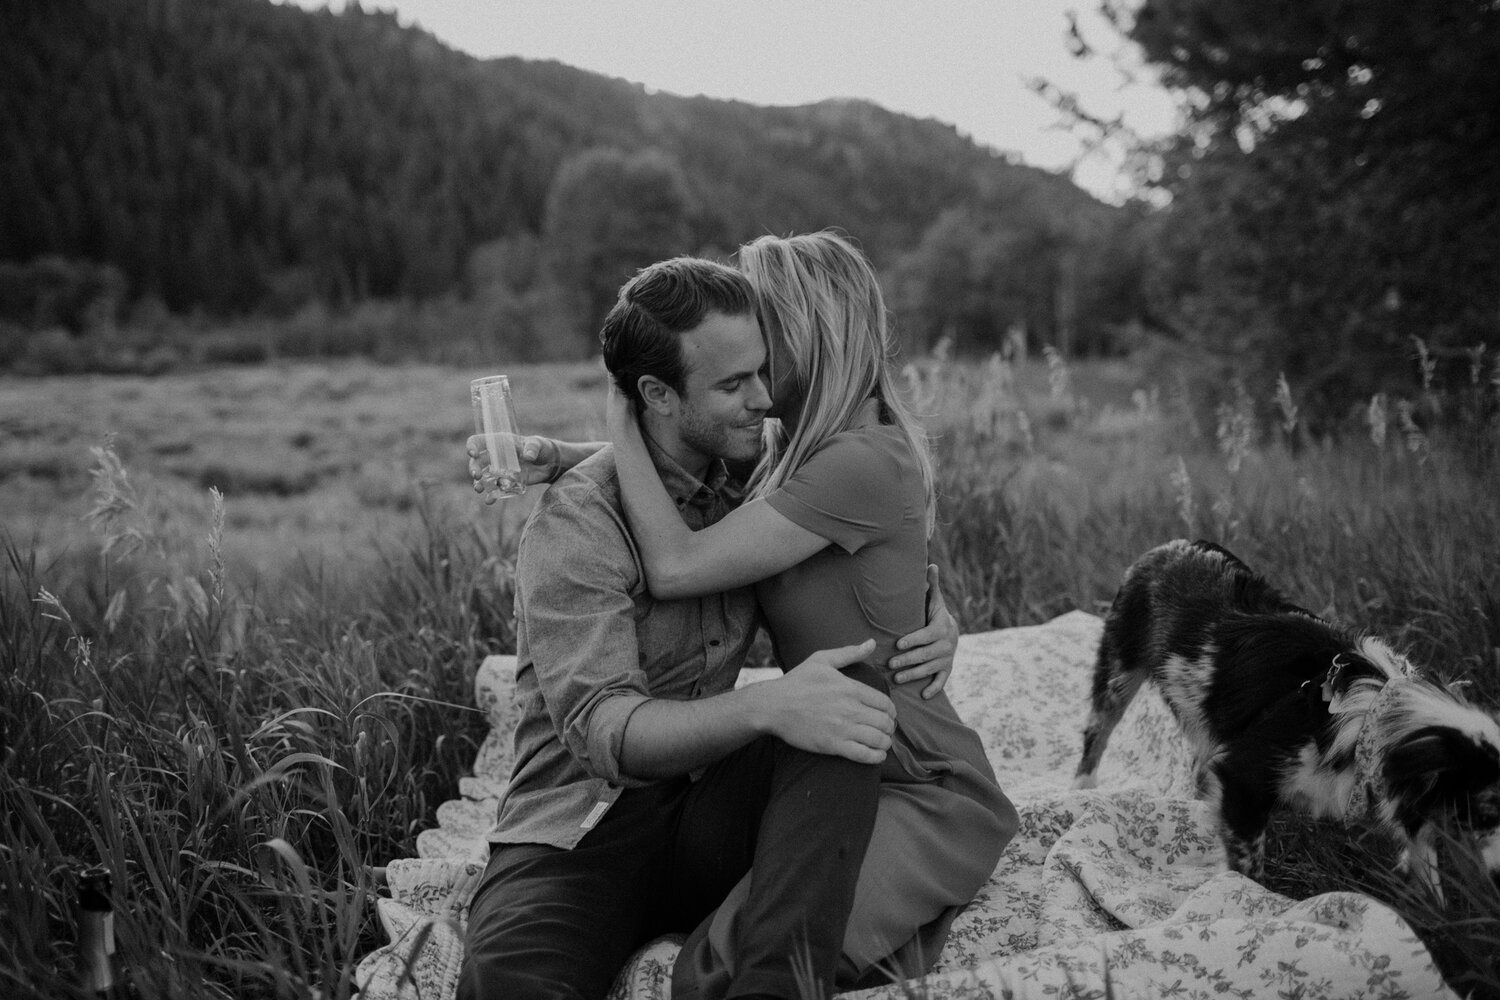 sun-valley-engagement-photos-christinemarie-19.jpg